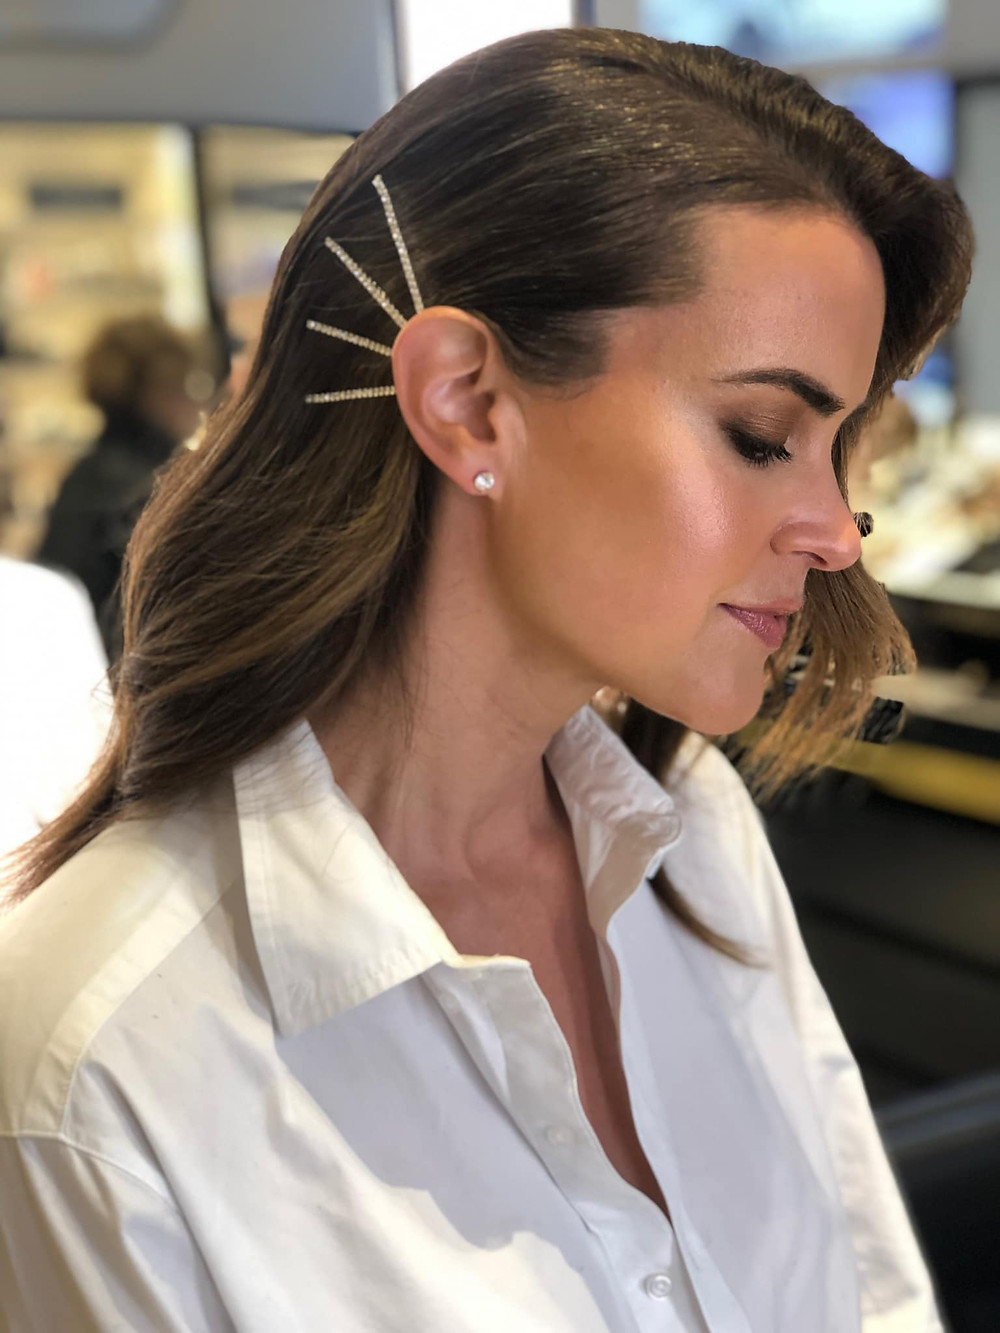 80s/90s Glamour is back - think hair pins, pearl hair clips and bling